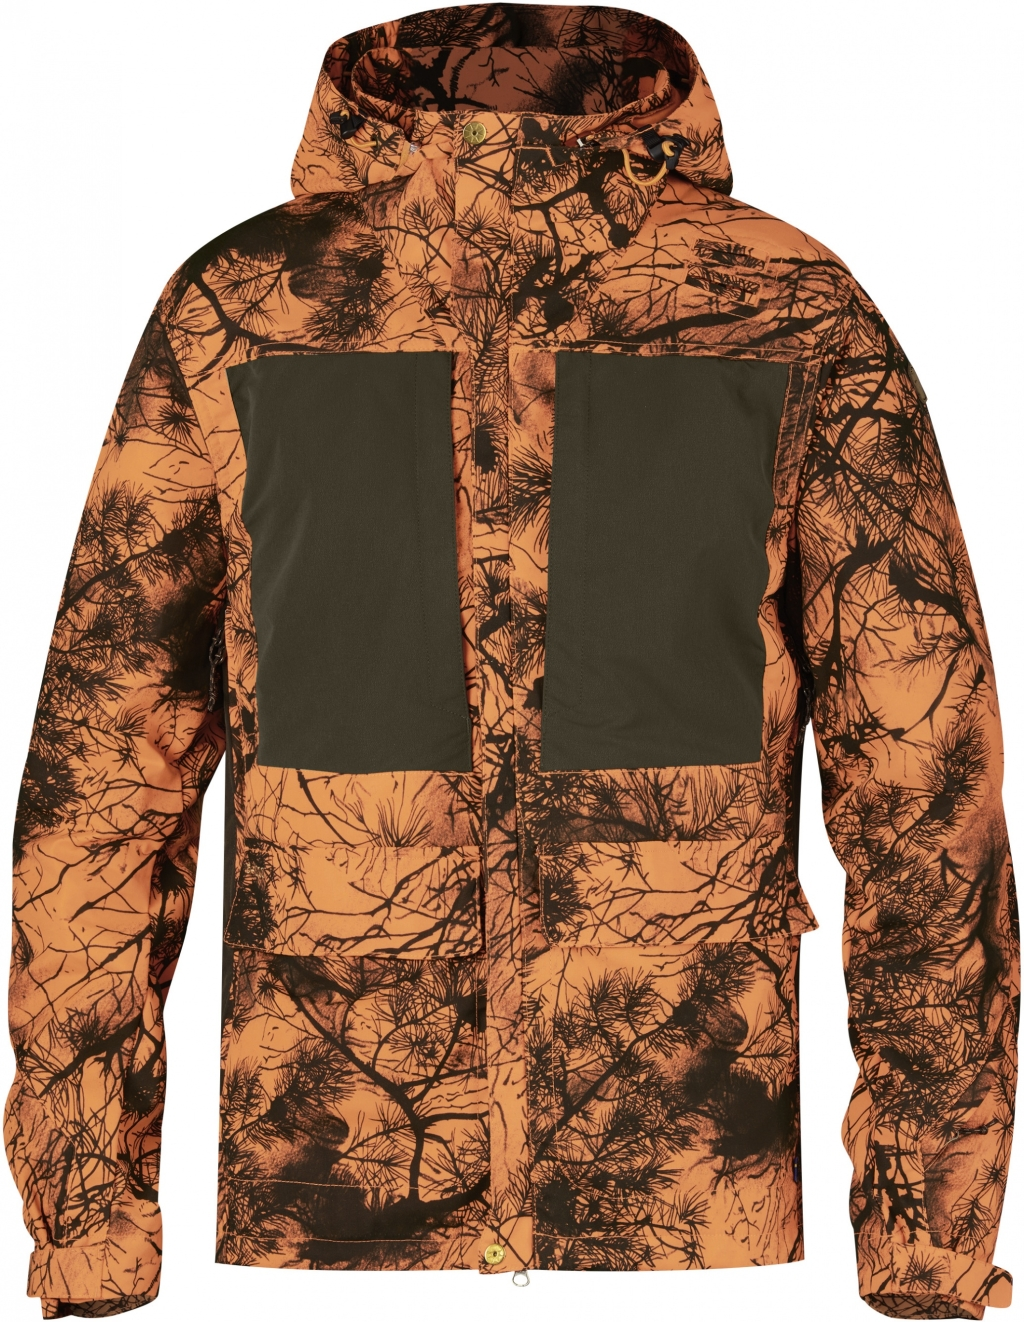 FjallRaven Lappland Hybrid Jacket Camo Orange Camo-30